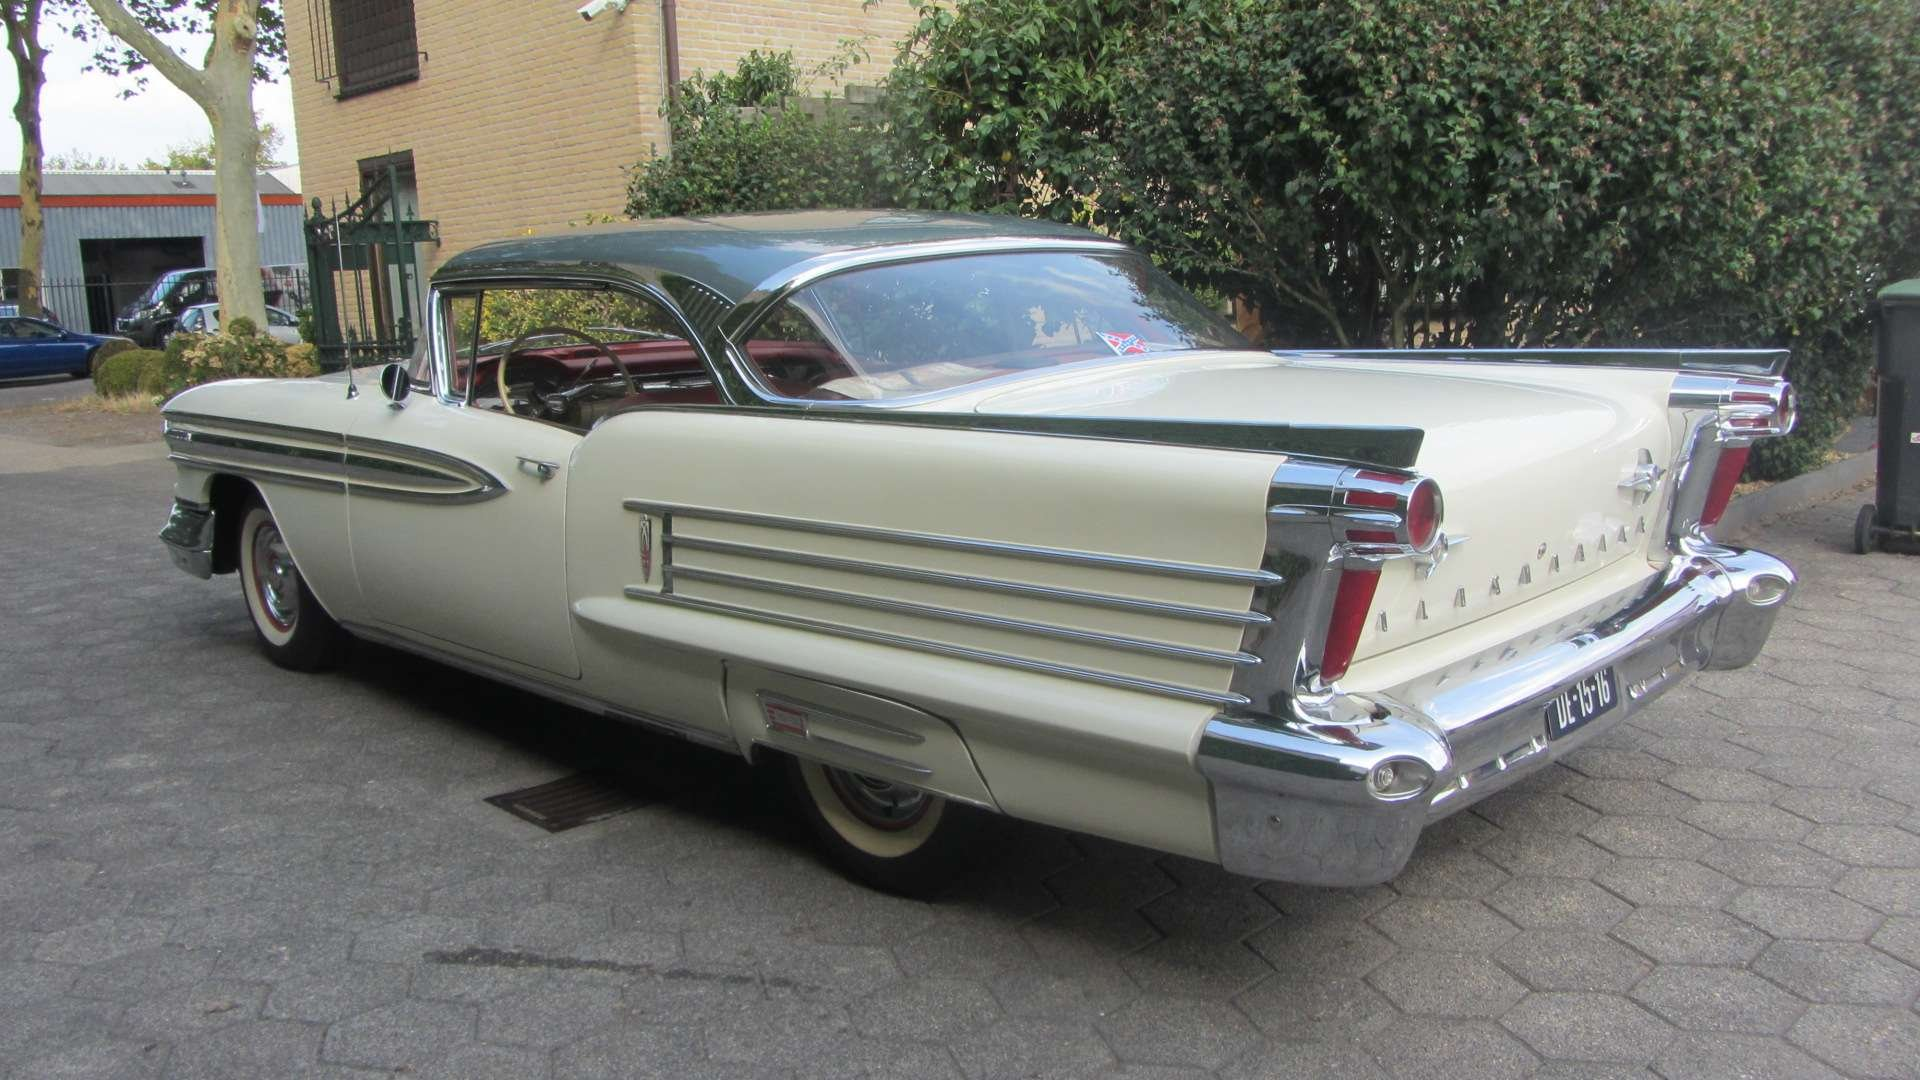 Oldsmobile Super 88 Coupe Nice Car 1958 & 50 USA Classics For Sale (picture 4 of 6)